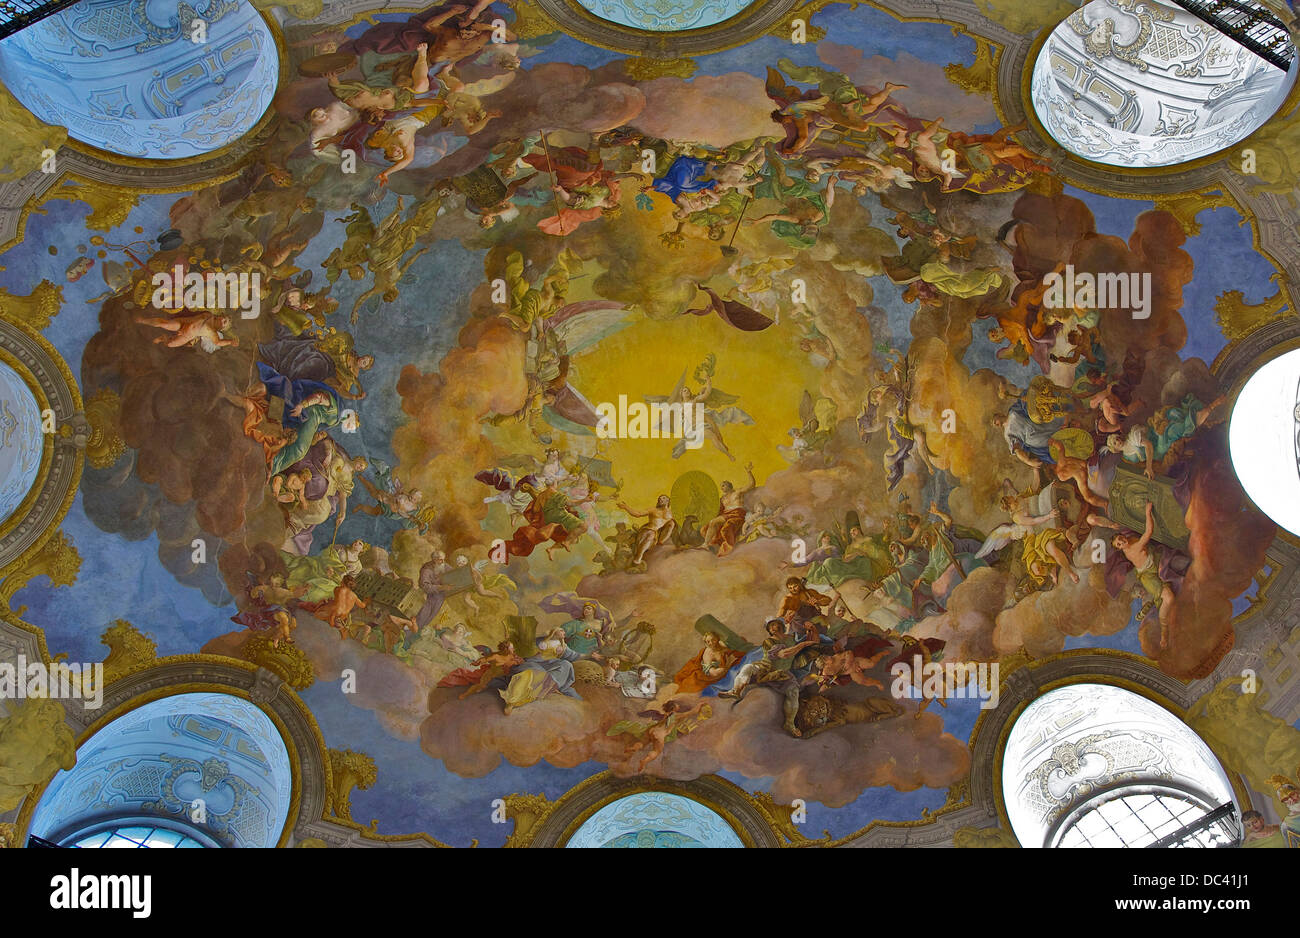 The fresco of the oval ceiling of the dome of the 'Prunksaal', the State Hall of the National Library, in - Stock Image